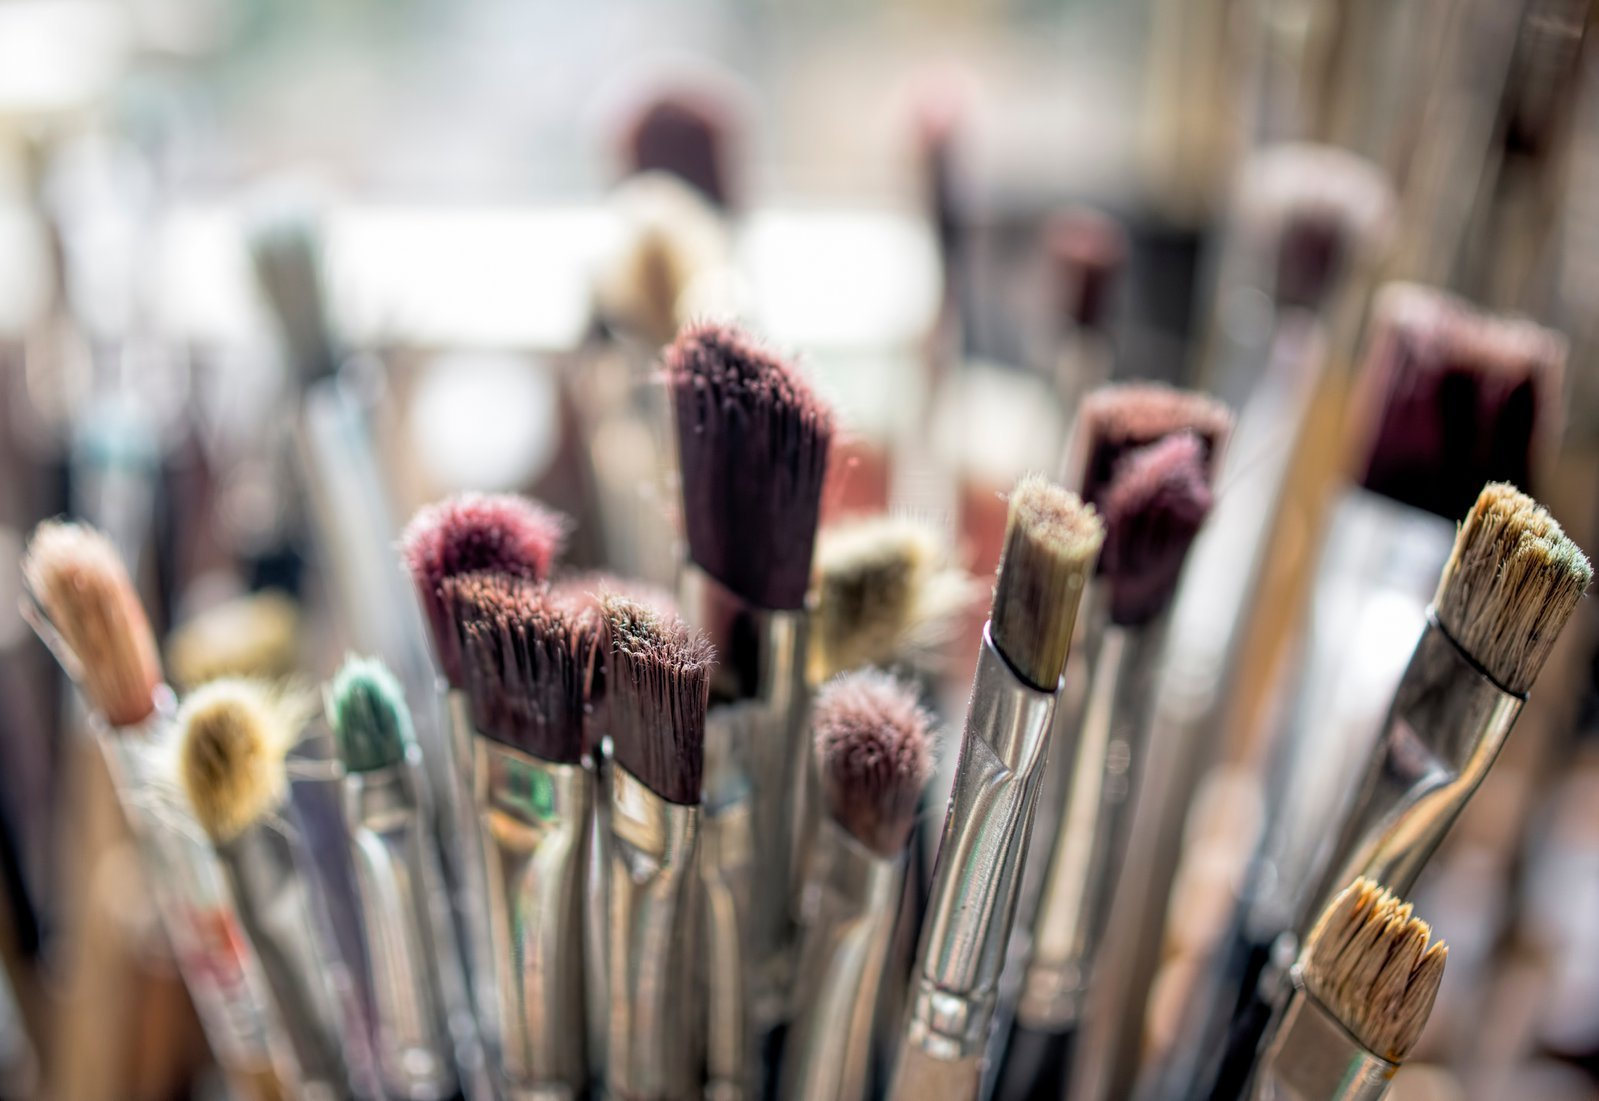 paint-brushes.jpg